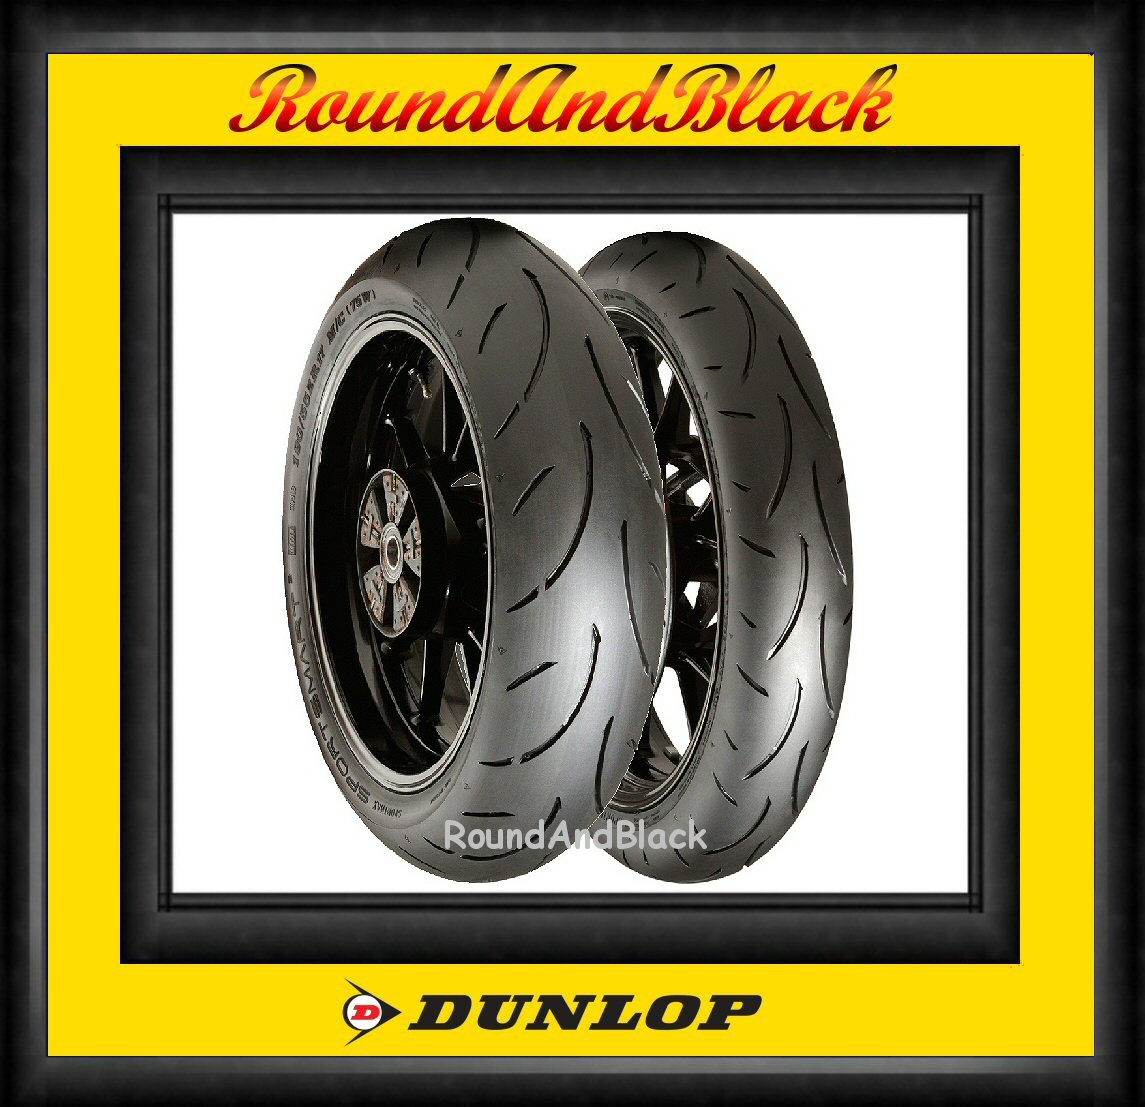 120 70 17 180 55 17 dunlop sportsmart 2 ii motorcycle tyres sport smart pair ebay. Black Bedroom Furniture Sets. Home Design Ideas